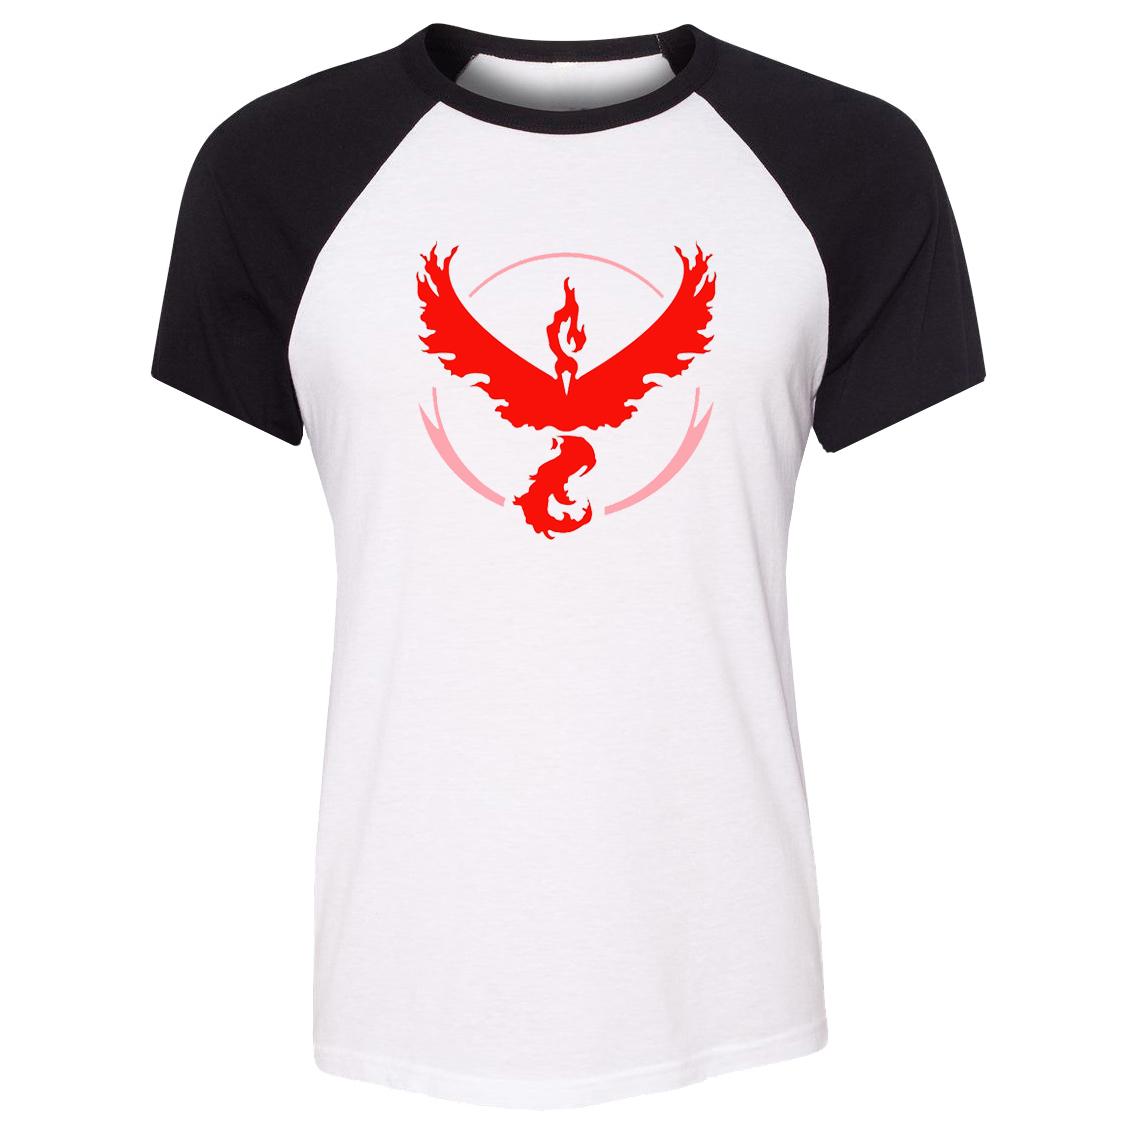 iDzn Summer T-shirt Pokemon Go Game Fans Moltres Team Red Team Art Pattern Raglan Short Sleeve Women T shirt Girl Print Tee Tops